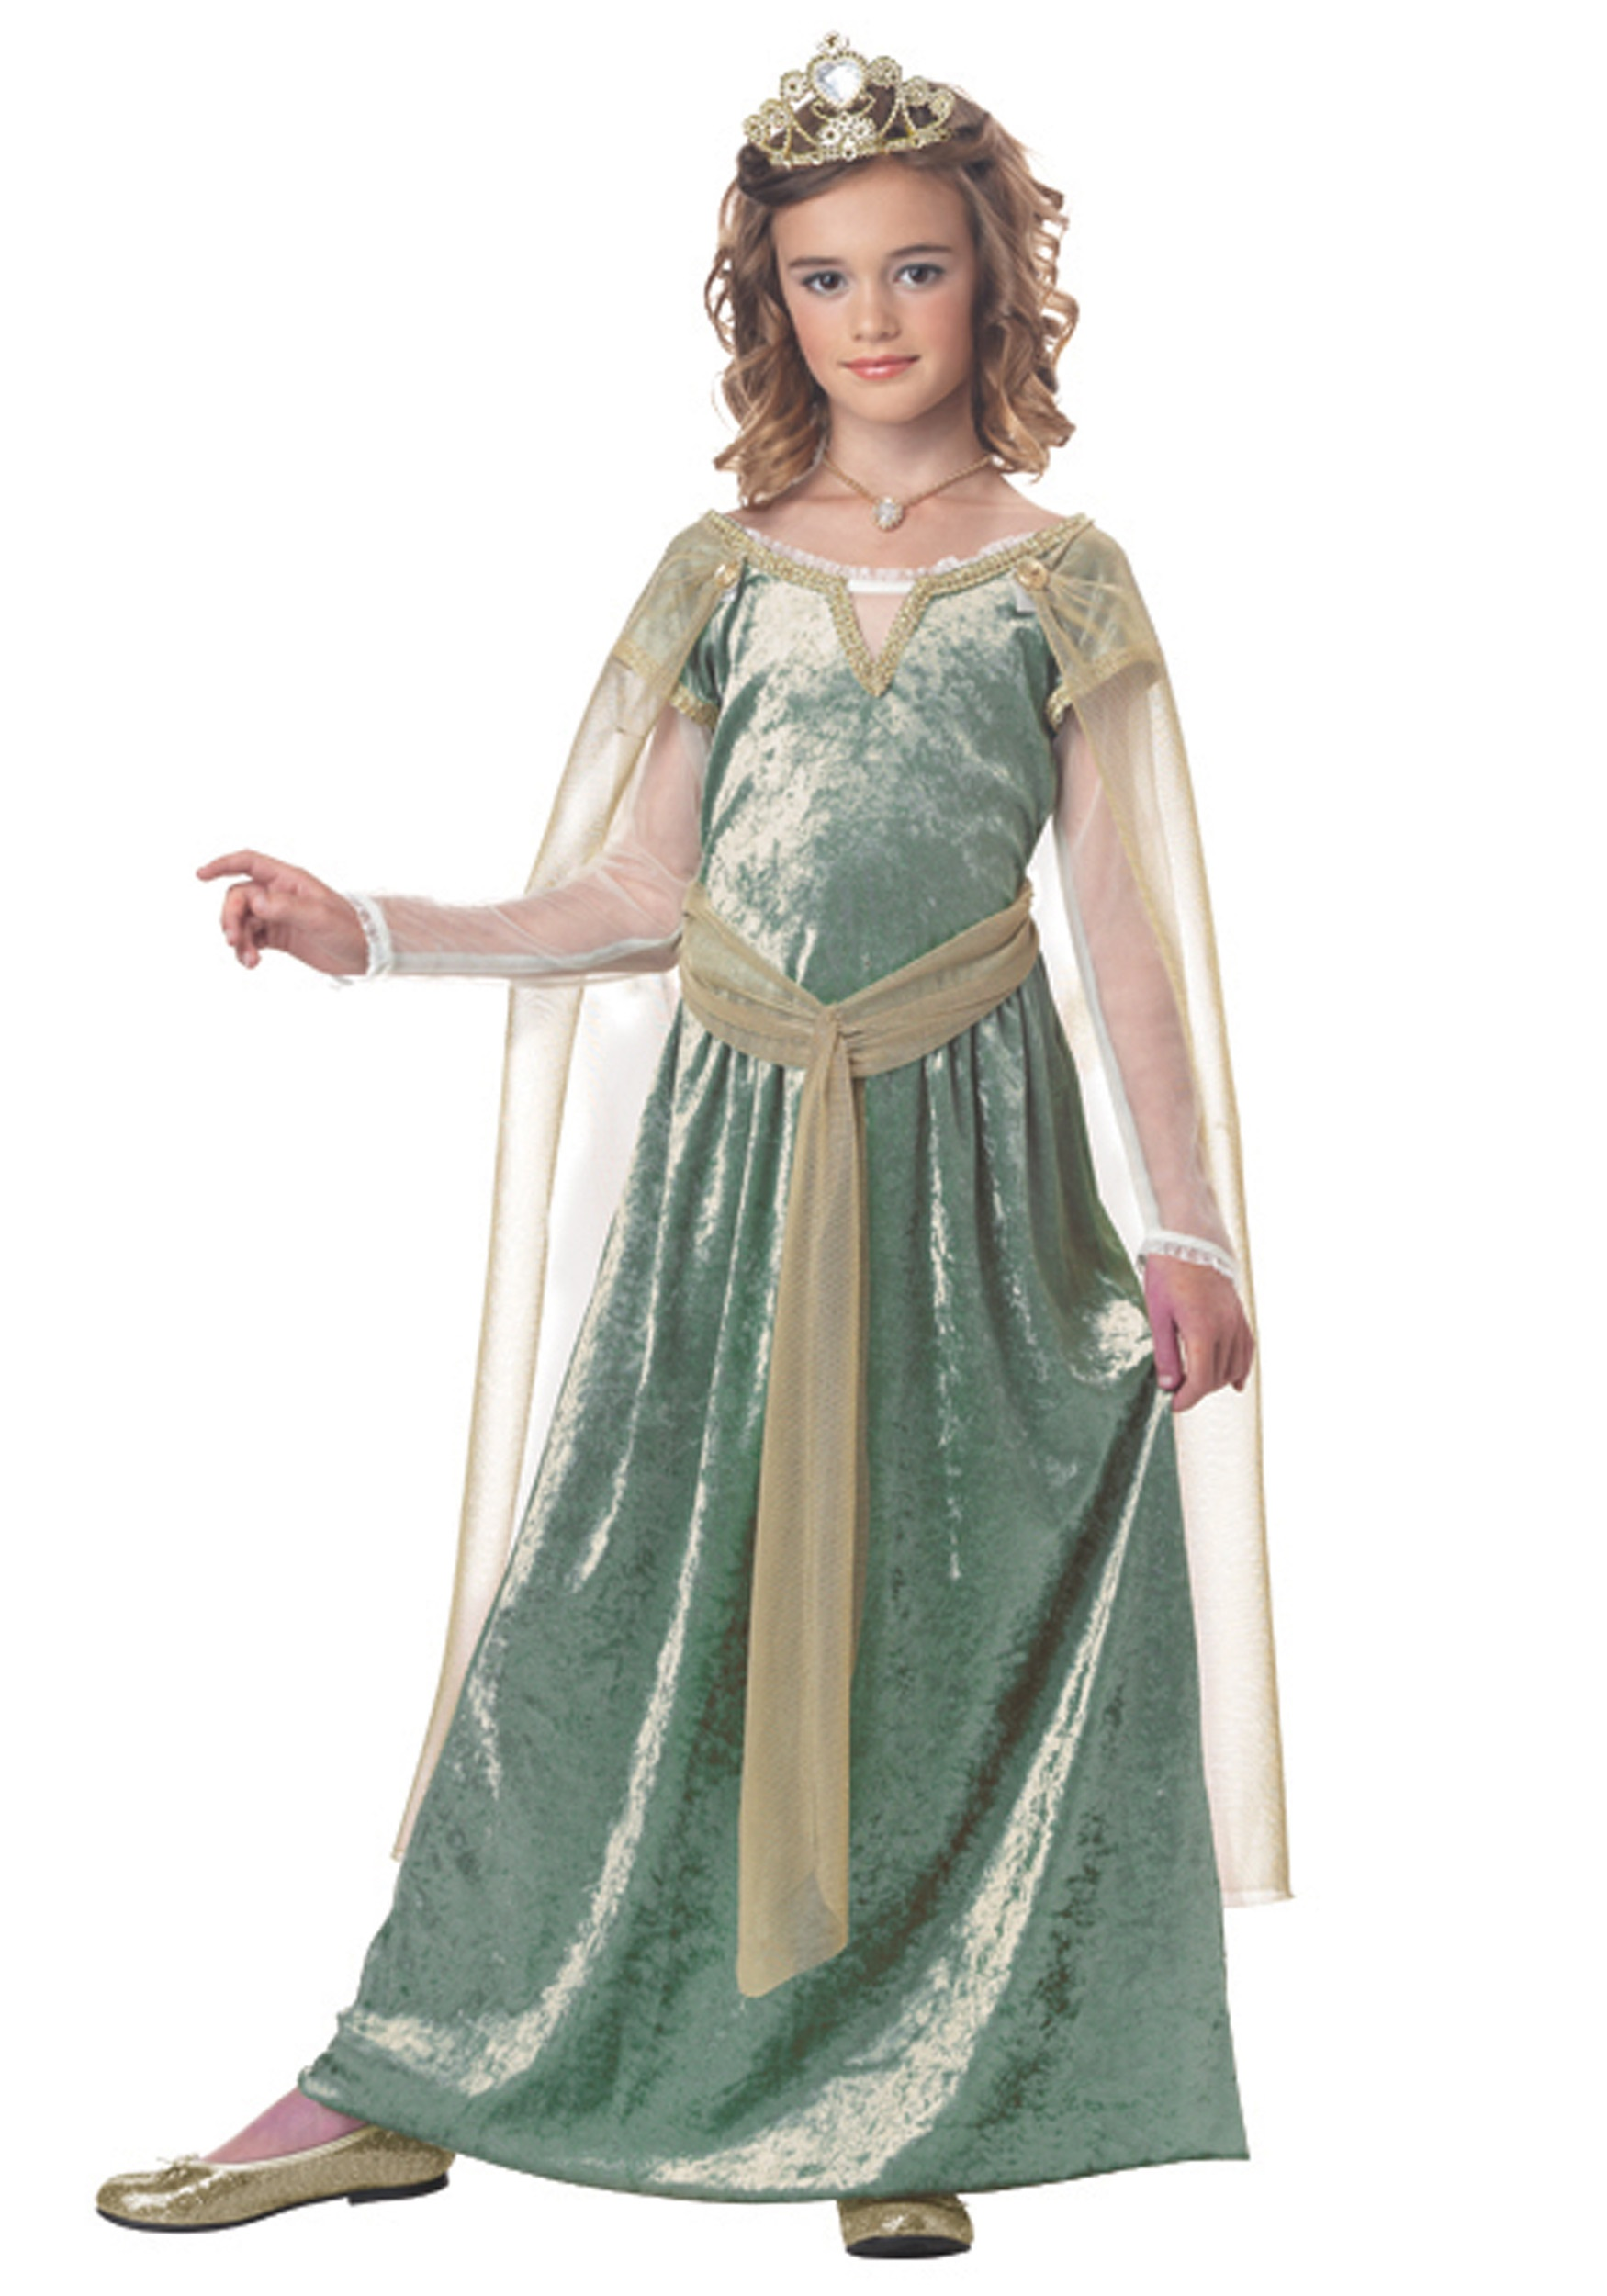 sc 1 st  Halloween Costumes & Child Queen Guinevere Costume